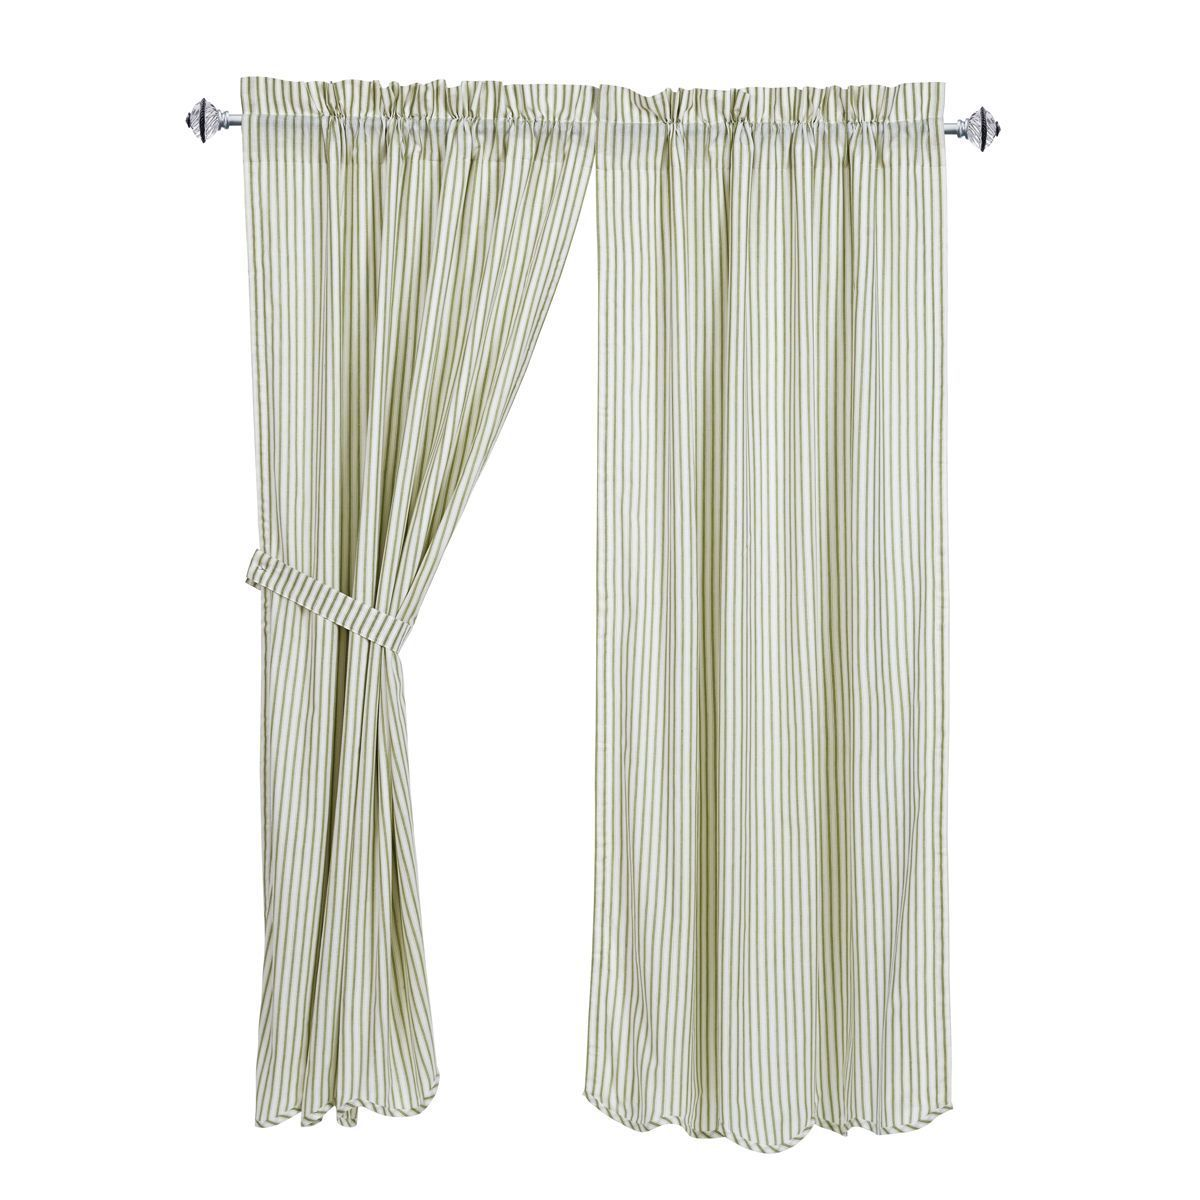 New Country Cottage Chic White Sage Green Ticking Striped Curtain Panels 63 Ebay